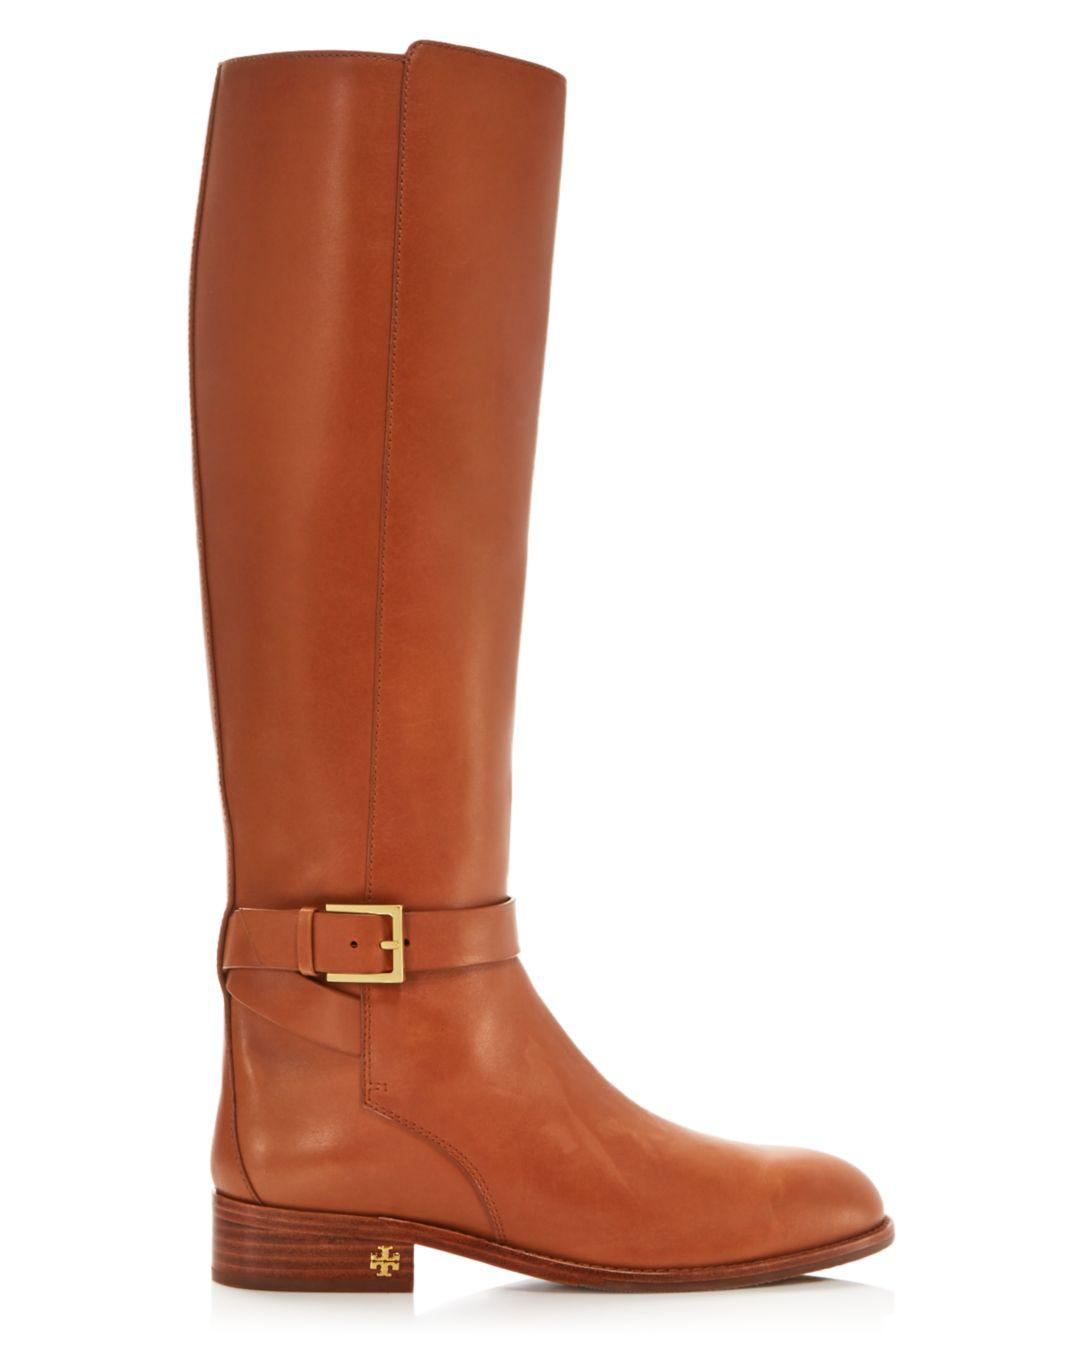 0570d3801 Lyst - Tory Burch Women s Brooke Round Toe Leather Riding Boots in Brown